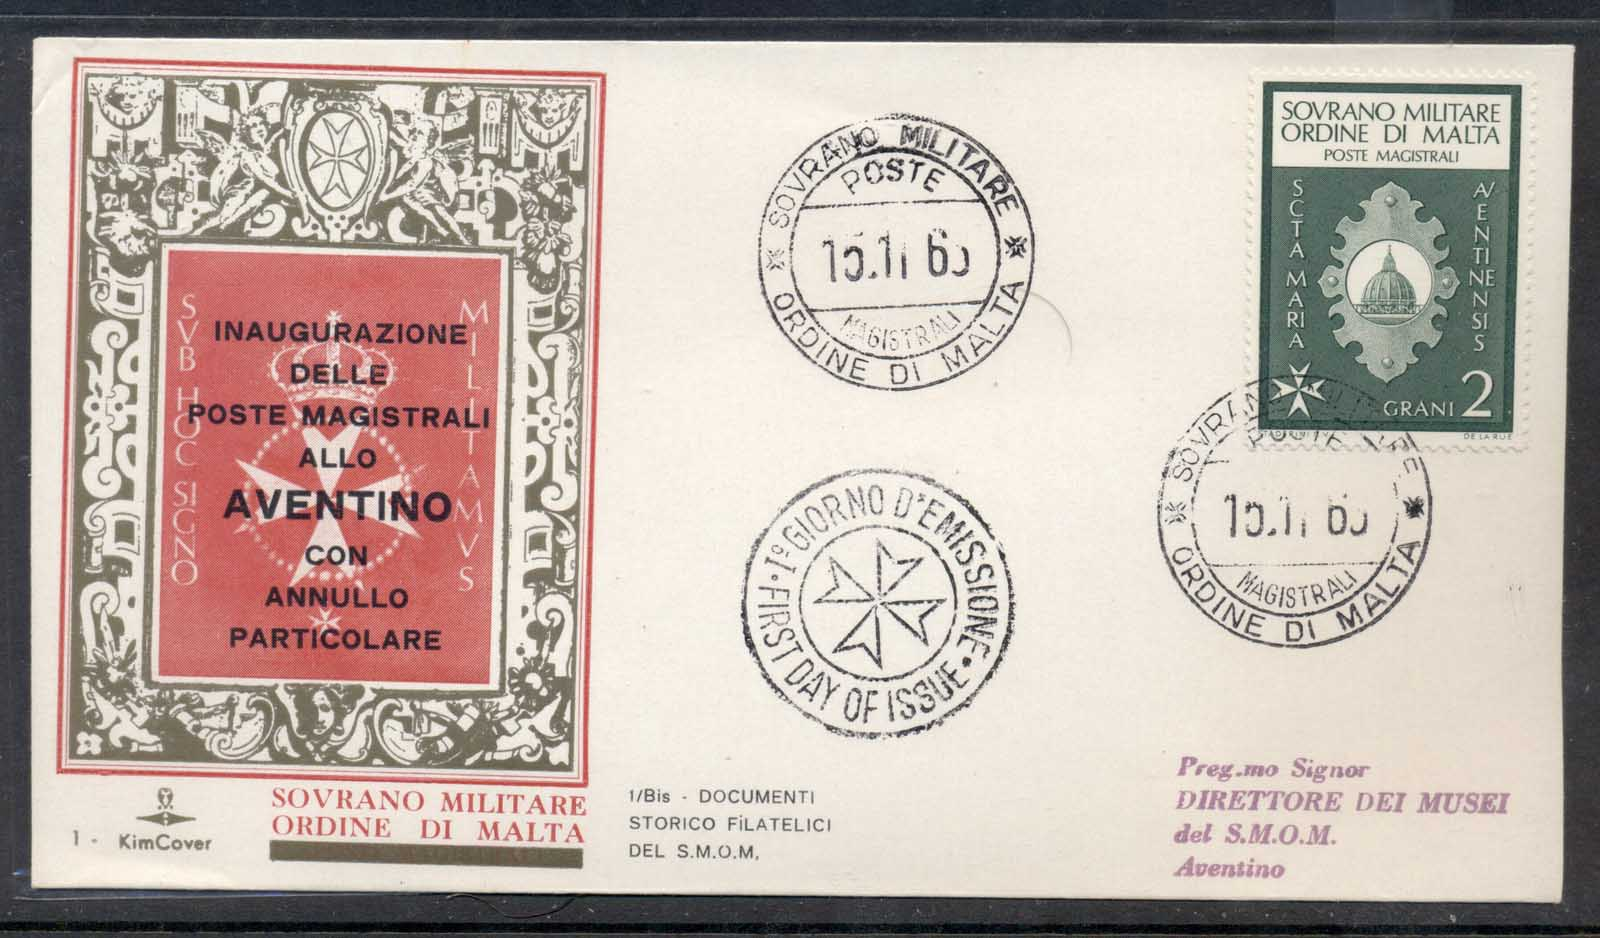 Malta 1969 Sovereign Military Order Post Inauguration FDC